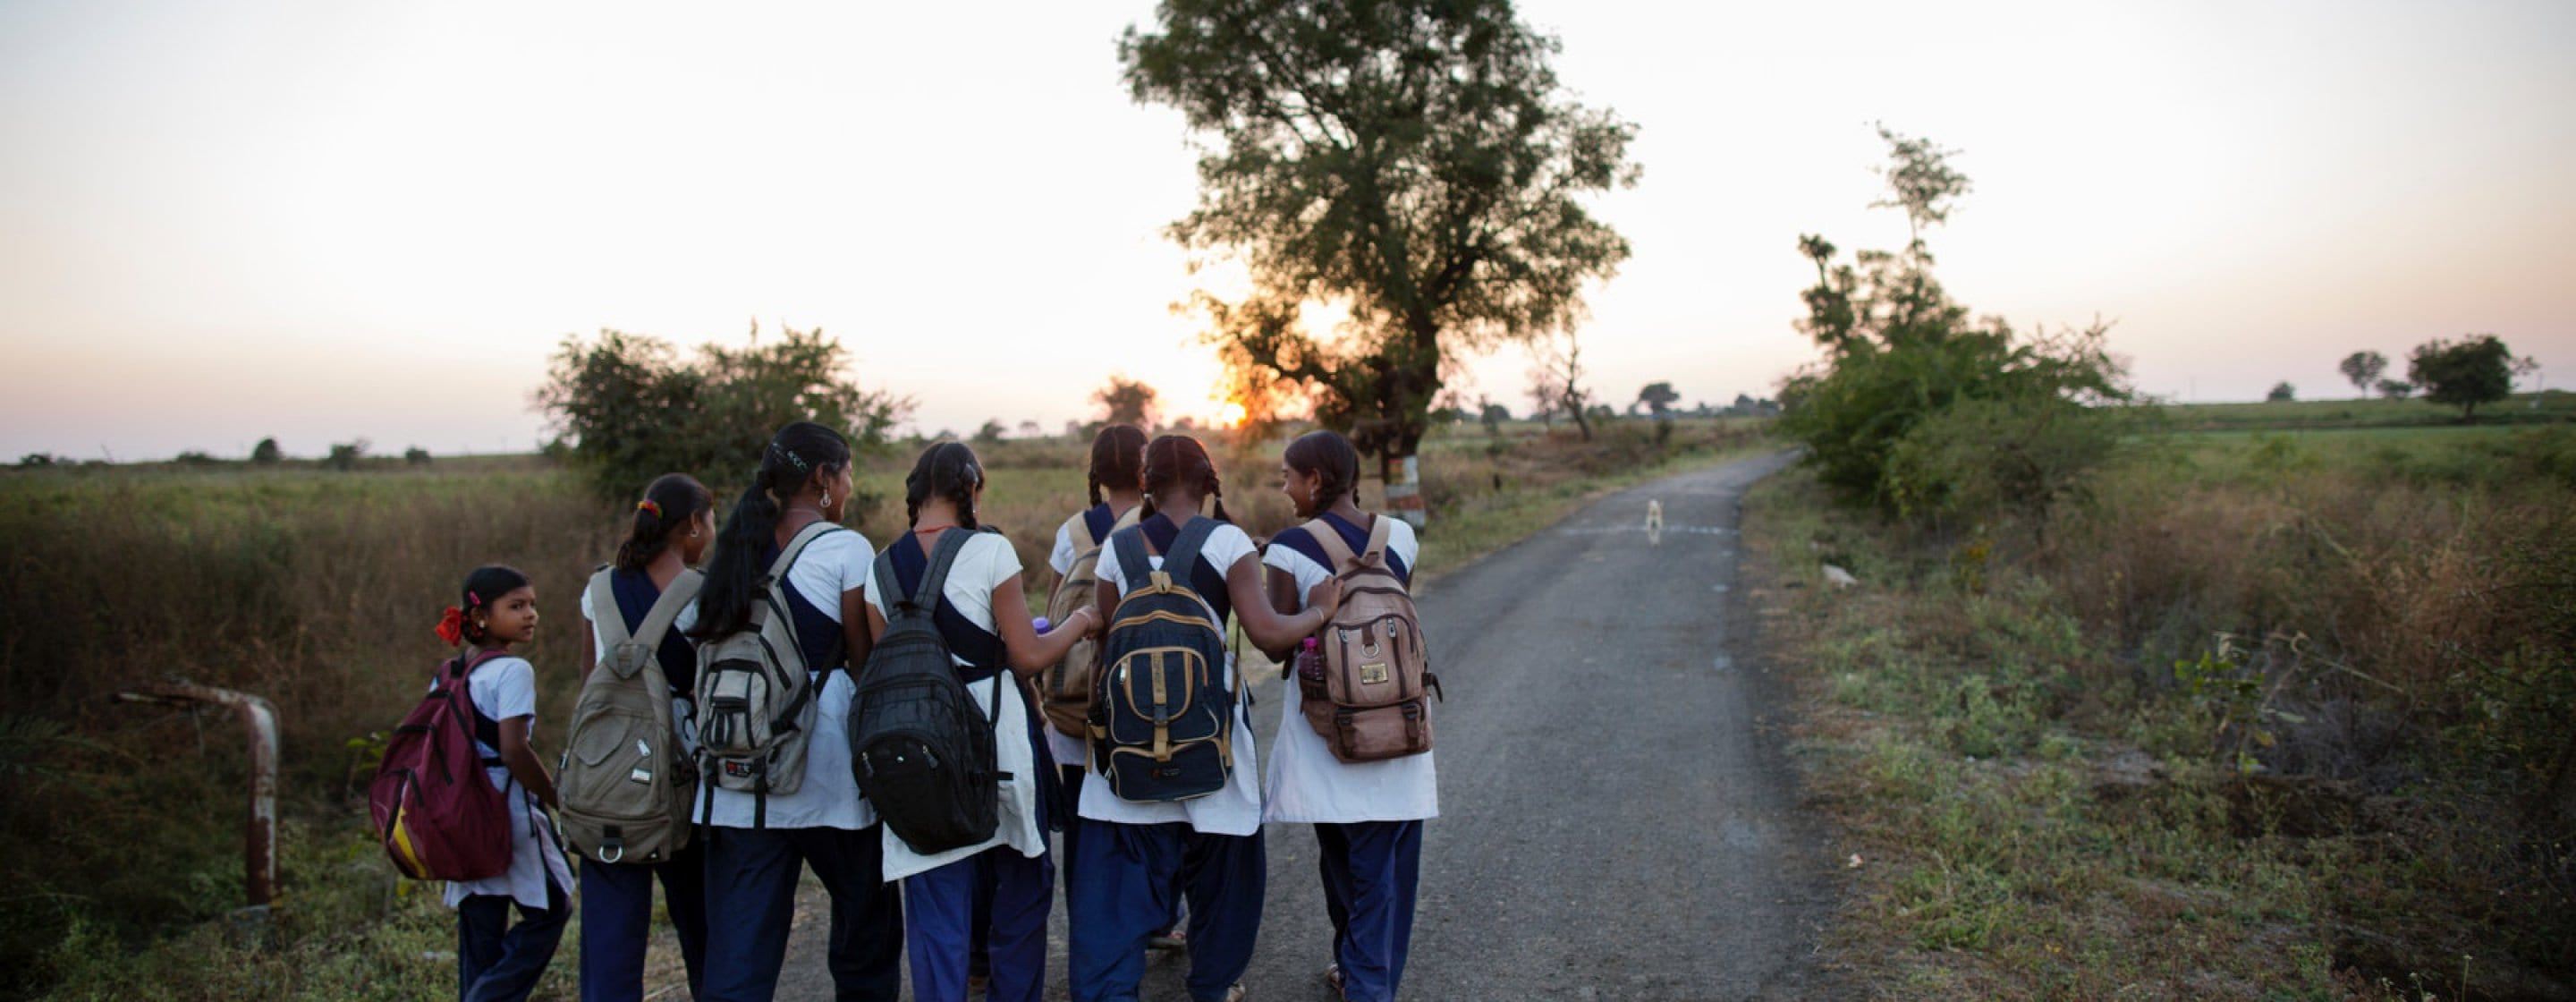 A group of schoolgirls on their way to school.